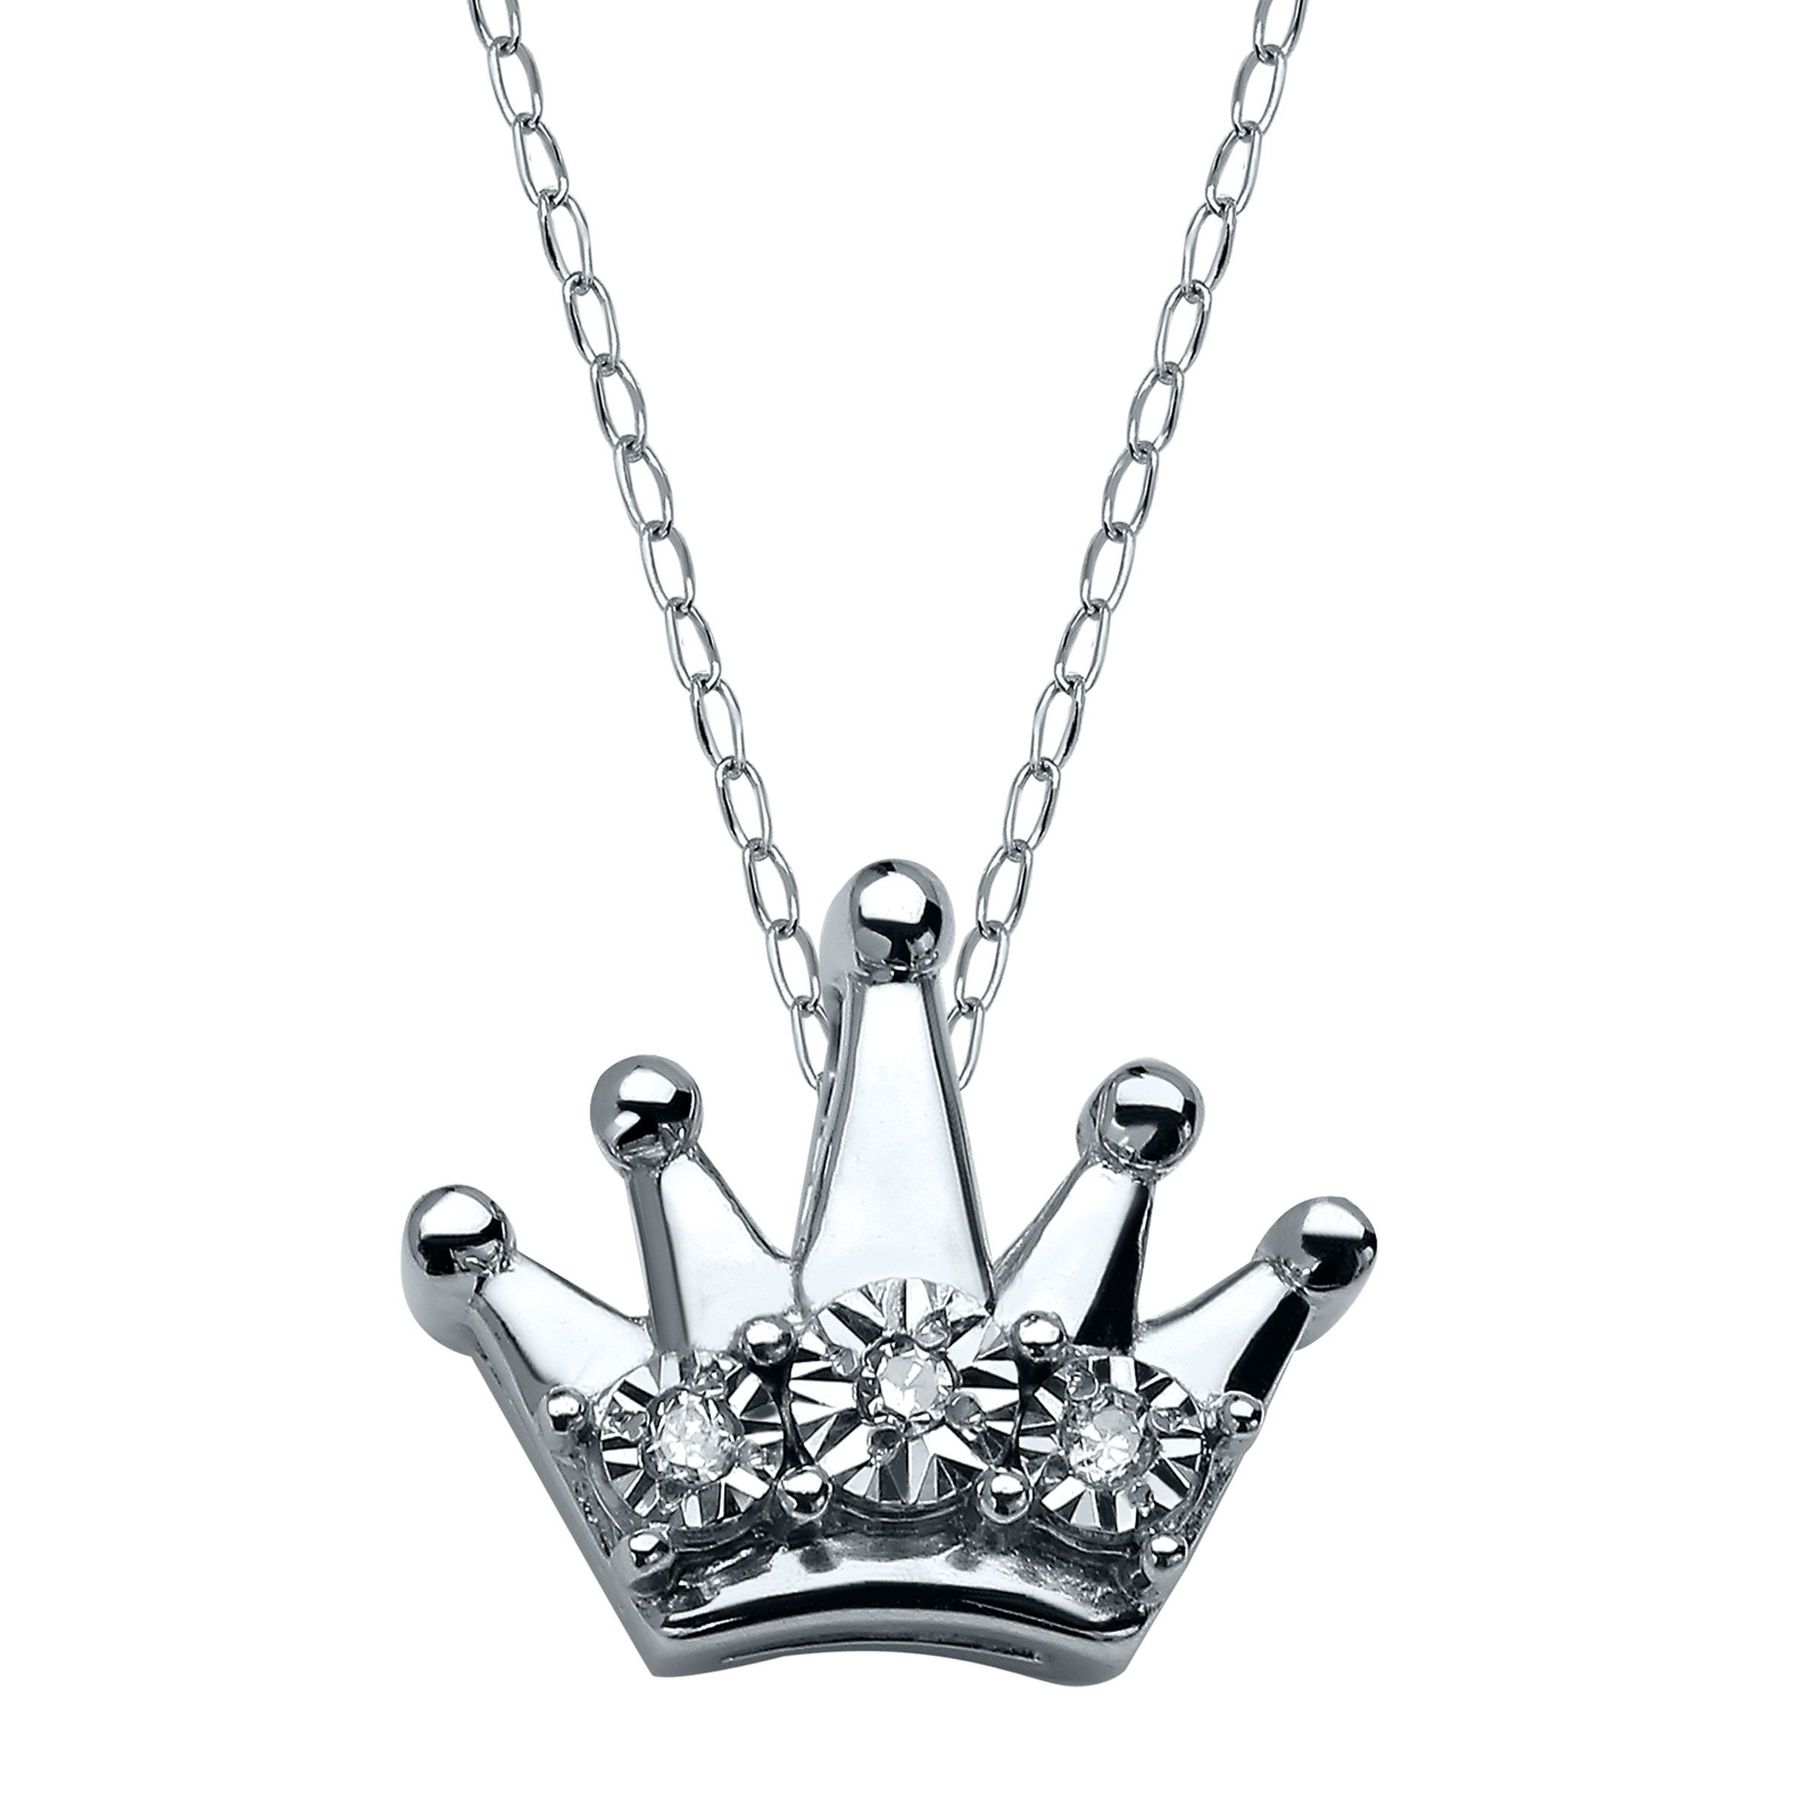 from ice empire gold necklace lyon s x lucious crown fox products hip foxs cz king the